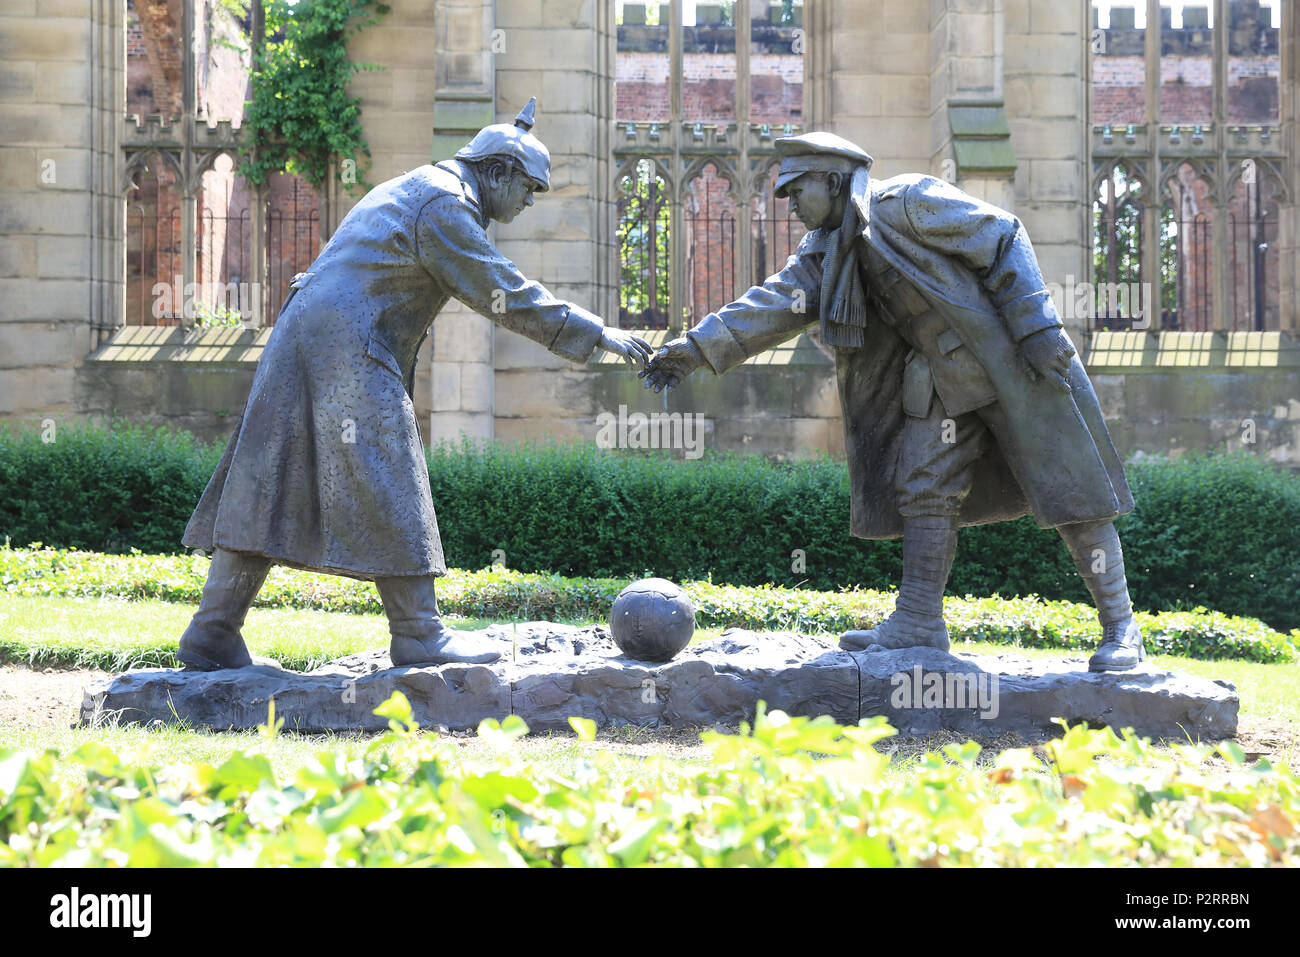 Ww2 Christmas Day.All Together Now Sculpture Representing The 1914 Christmas